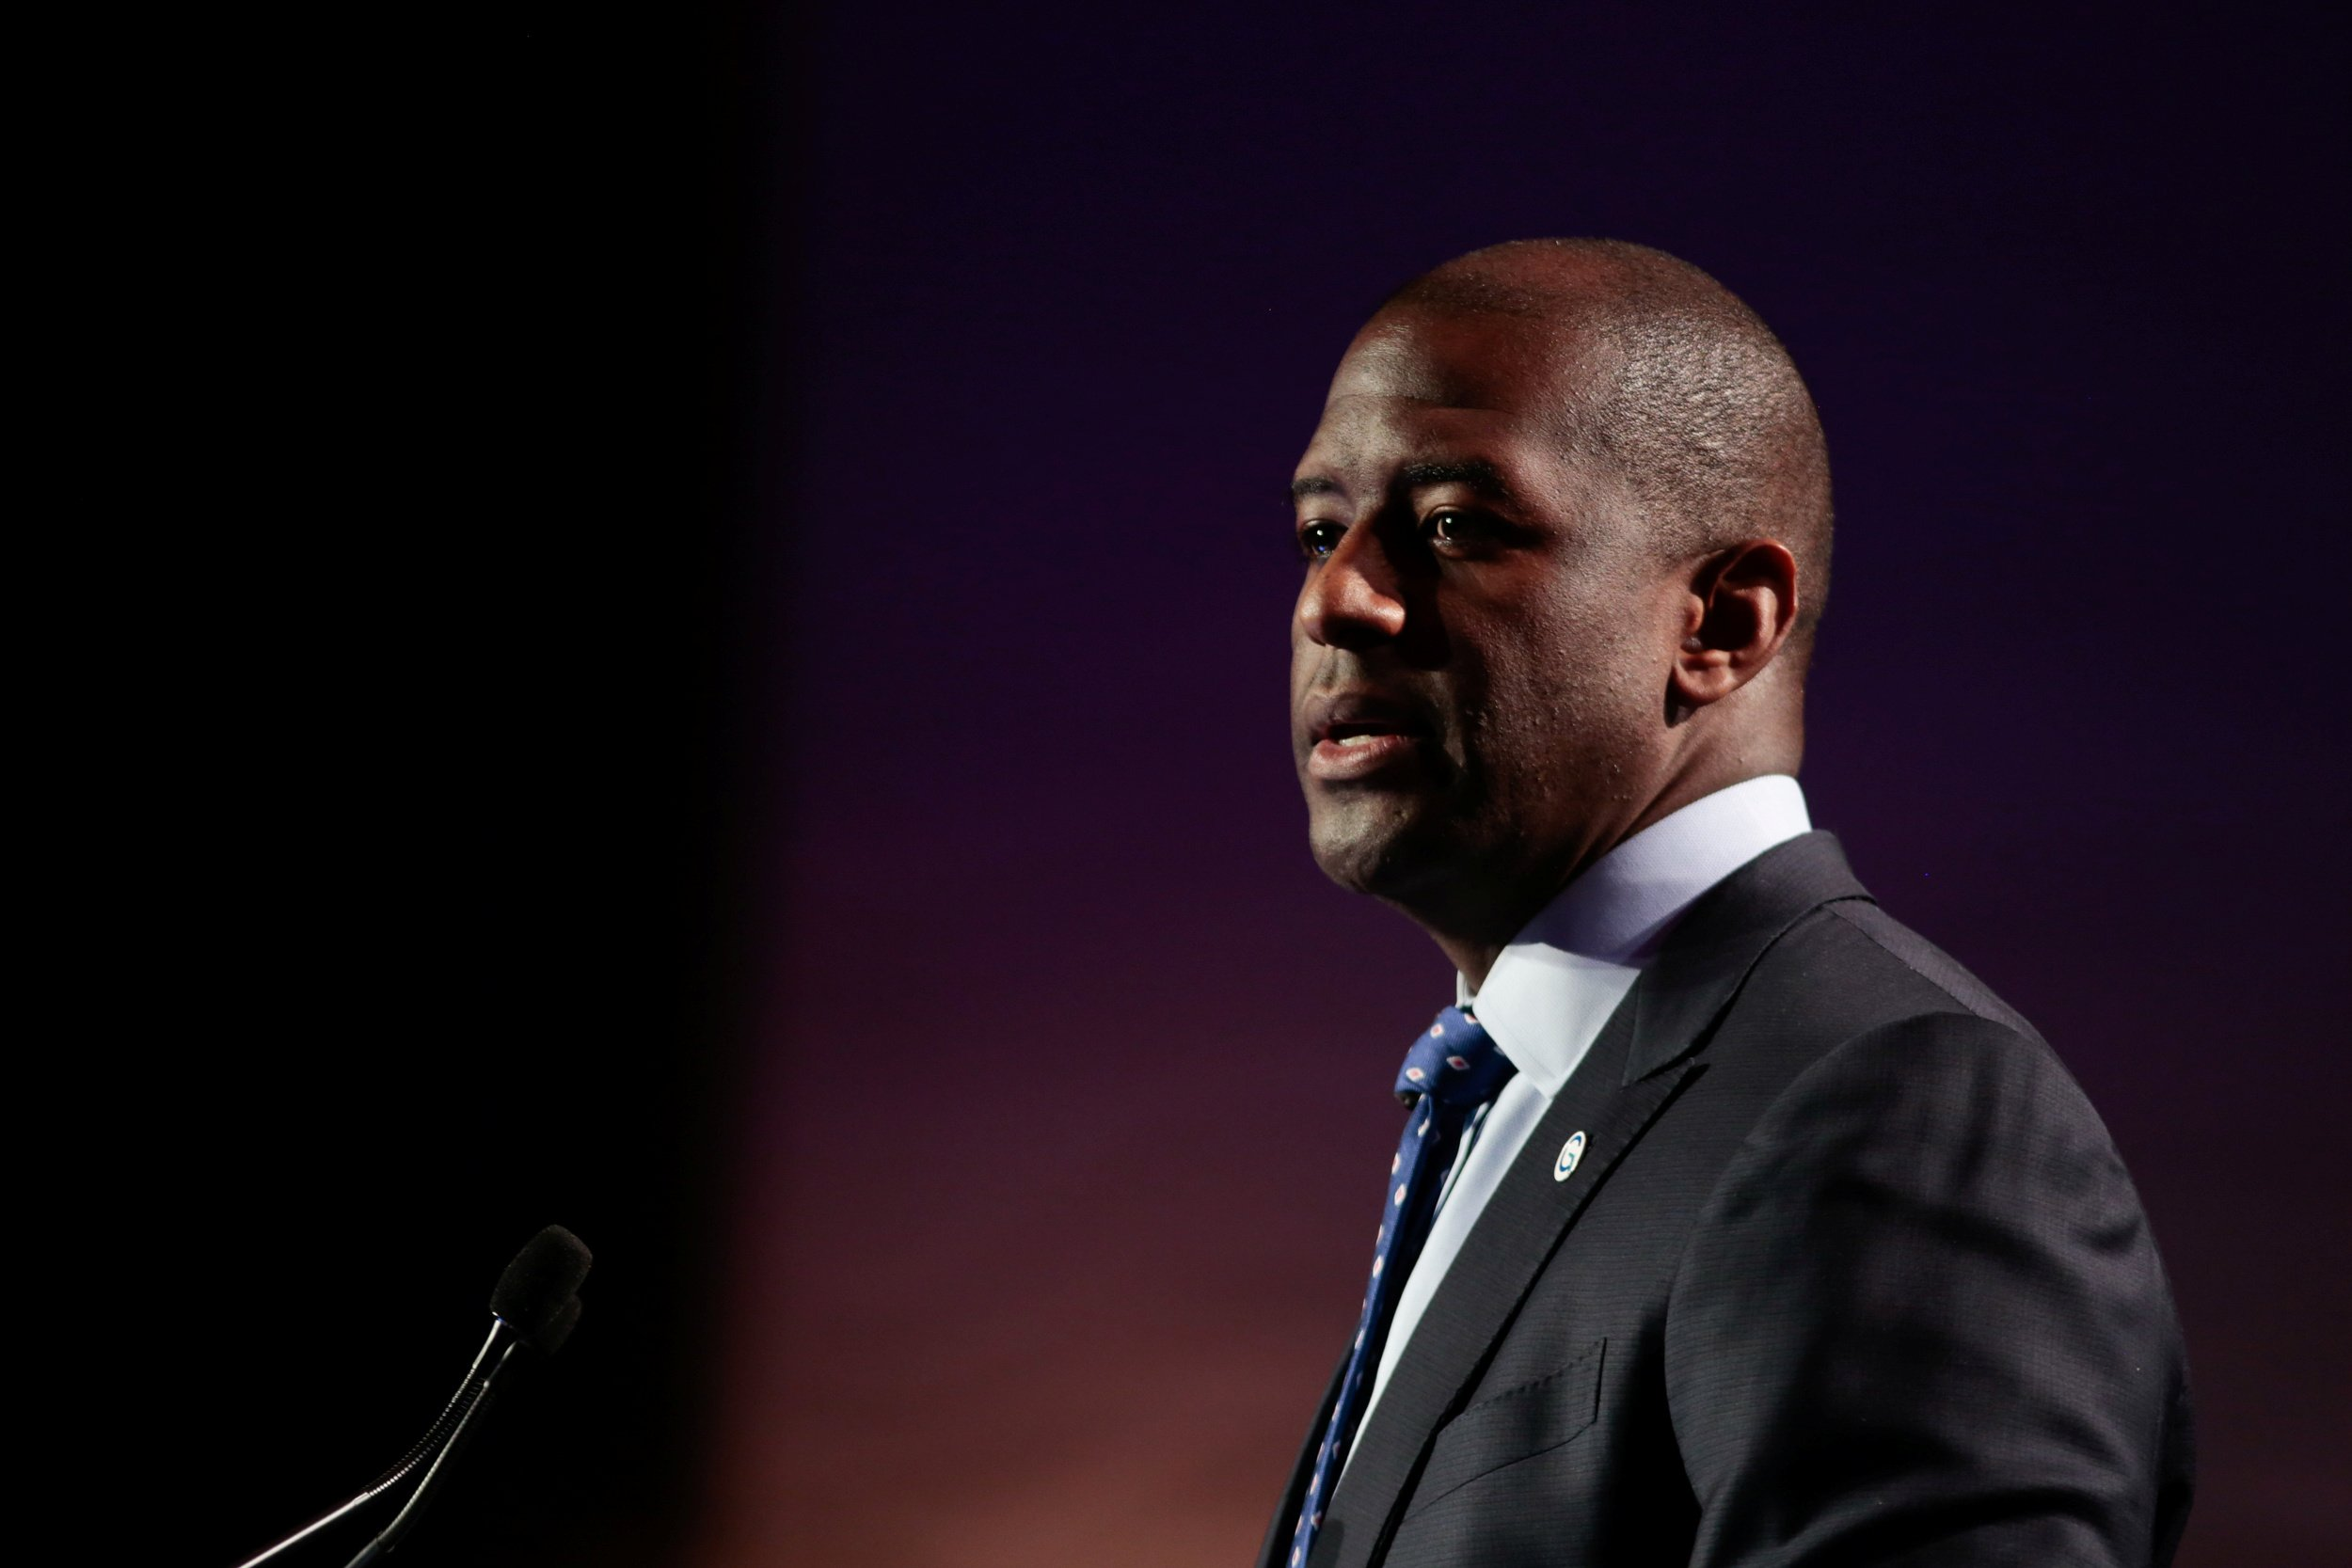 Andrew gillum staffer fired anti-trump tweet